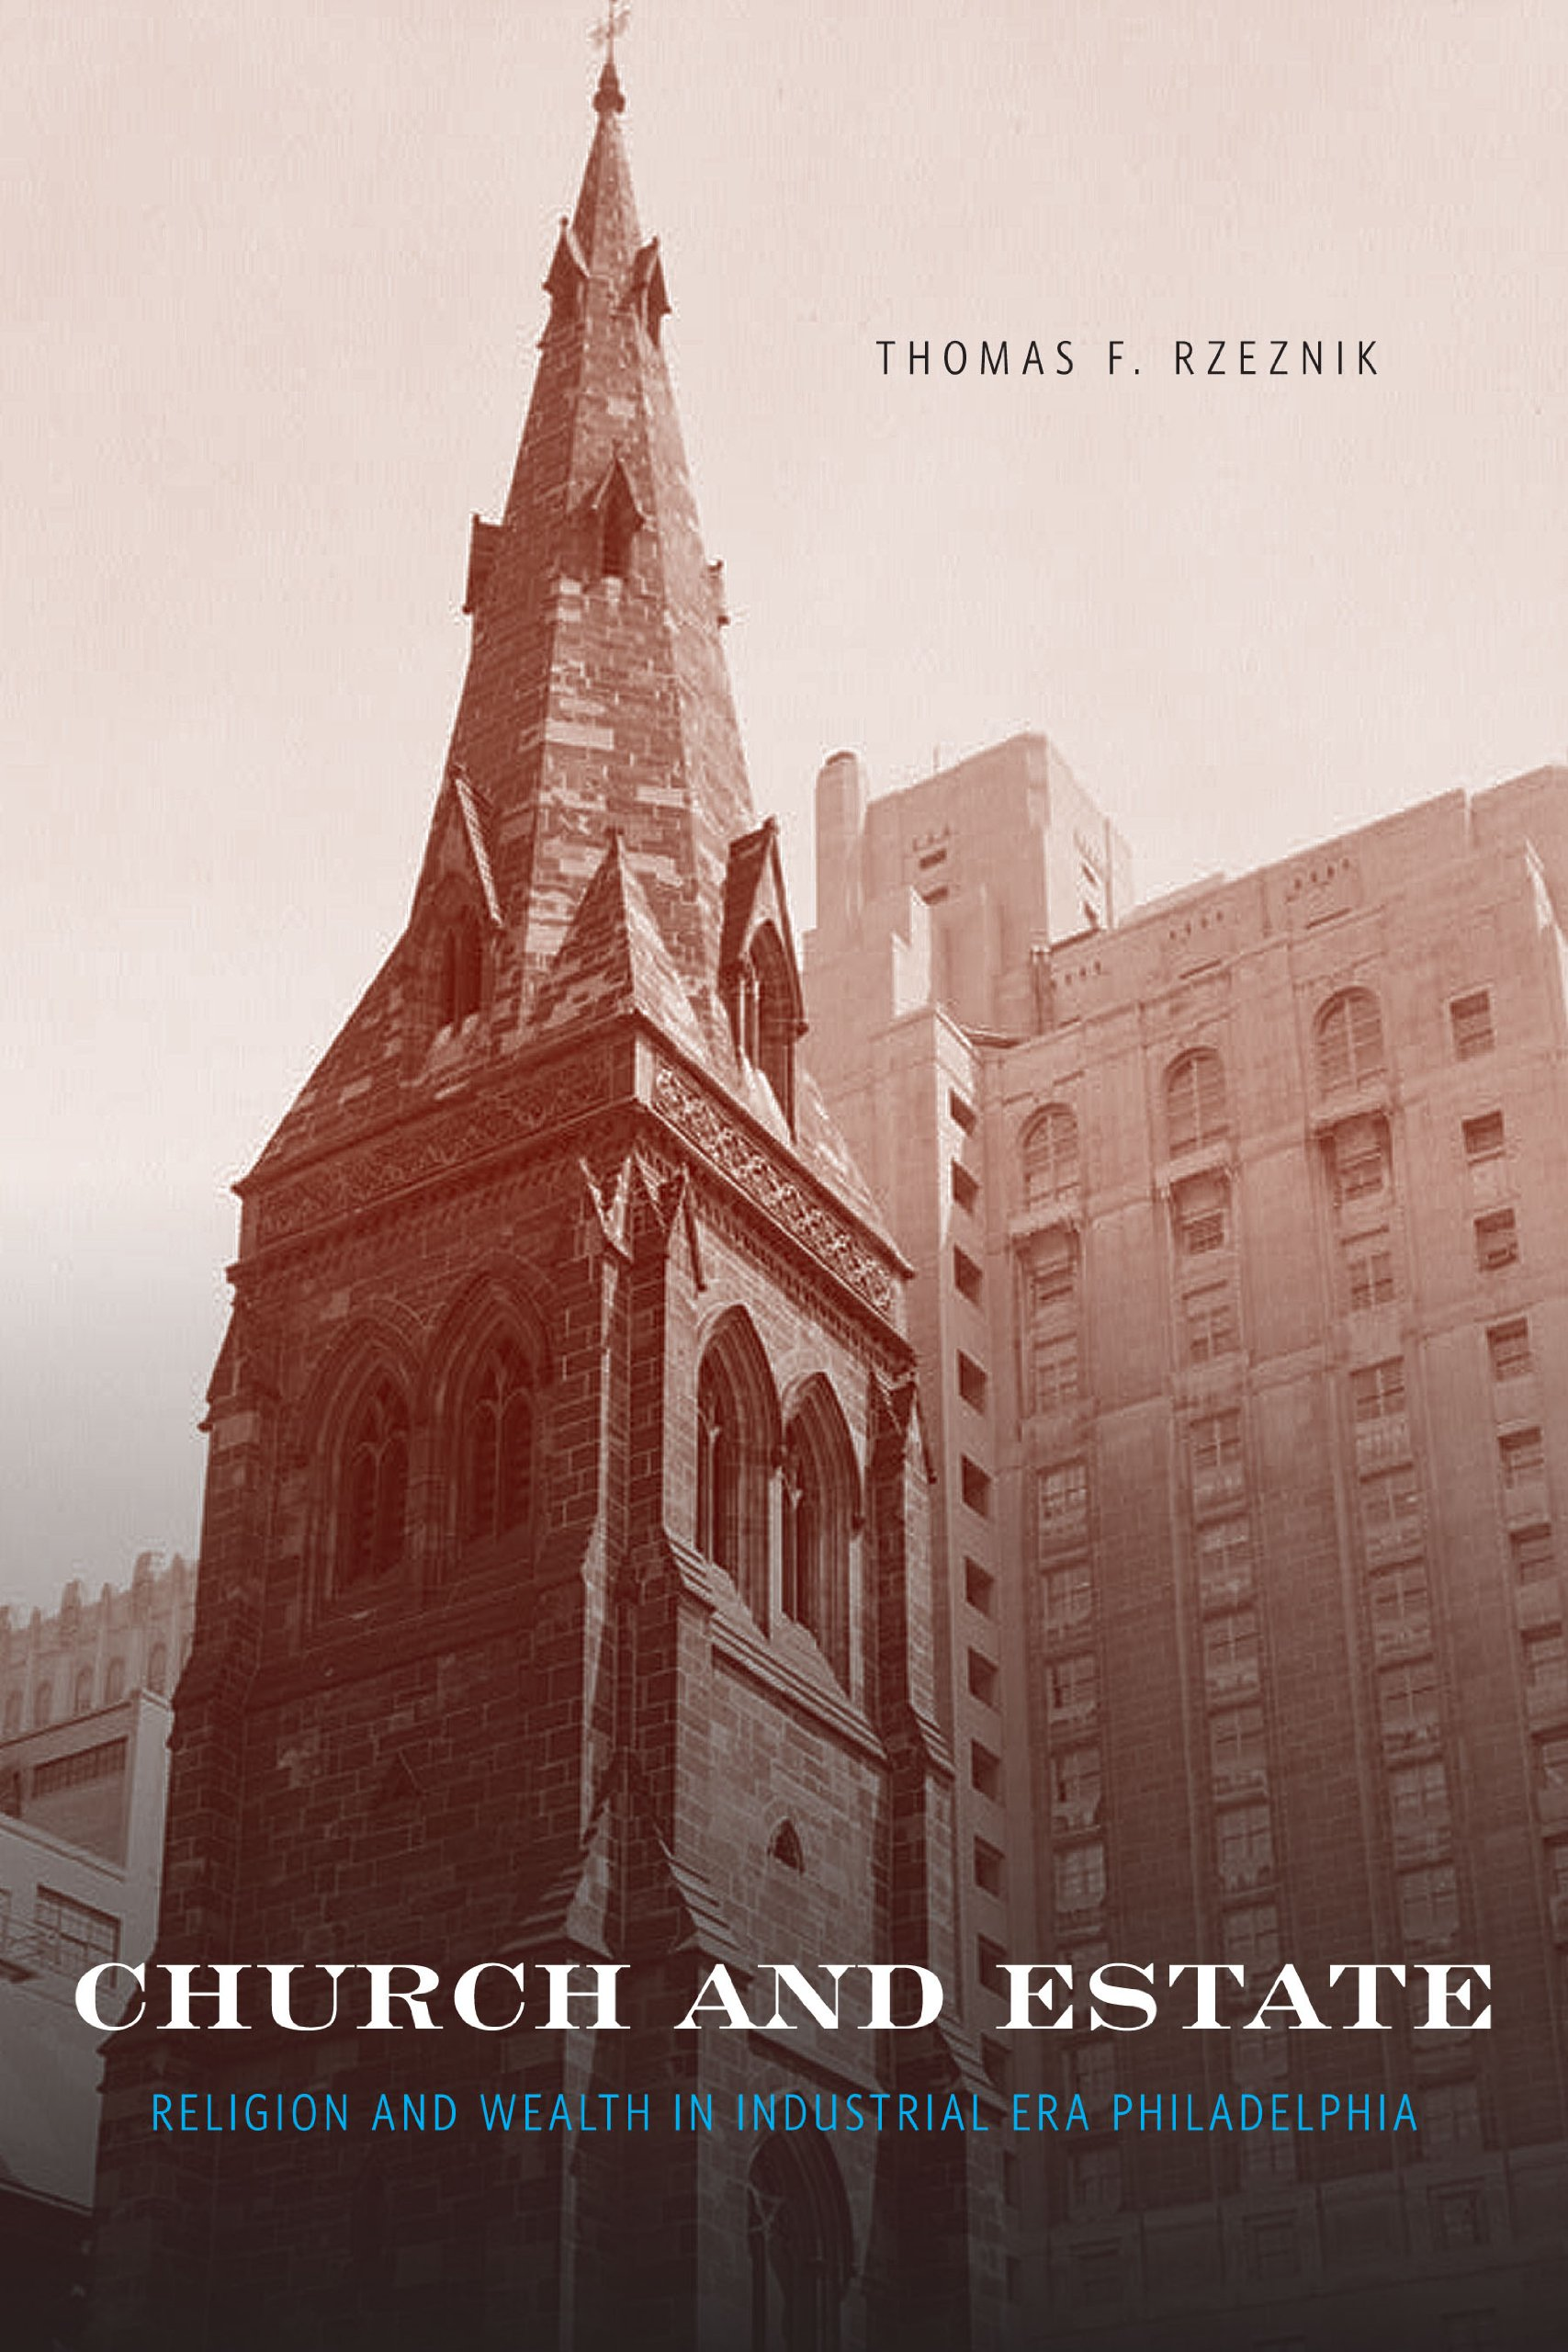 Church and Estate: Religion and Wealth in Industrial-Era Philadelphia